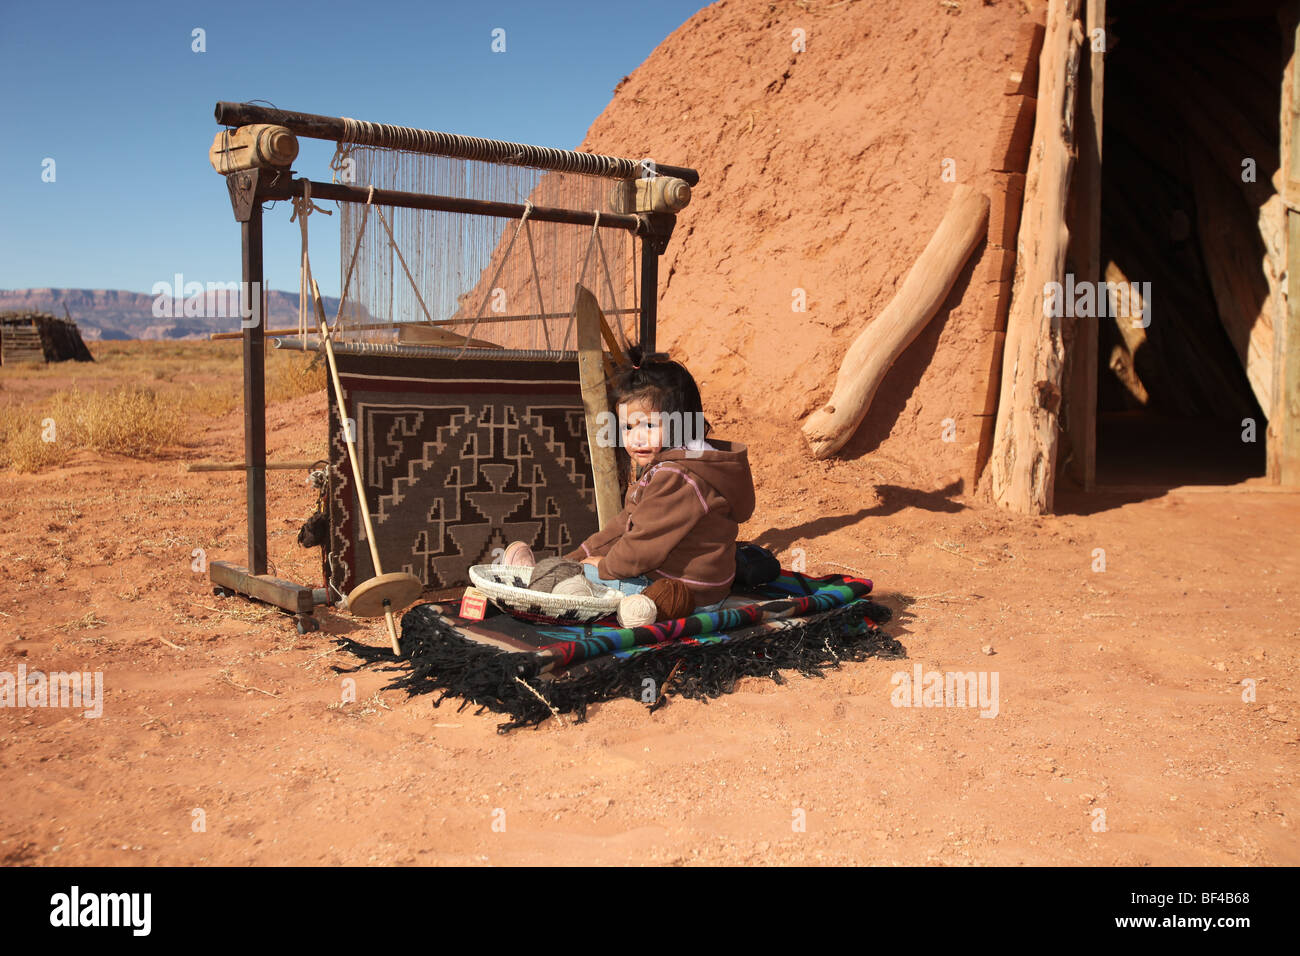 Native Navajo Child Sitting Next to Traditional Rug Making Tools - Stock Image